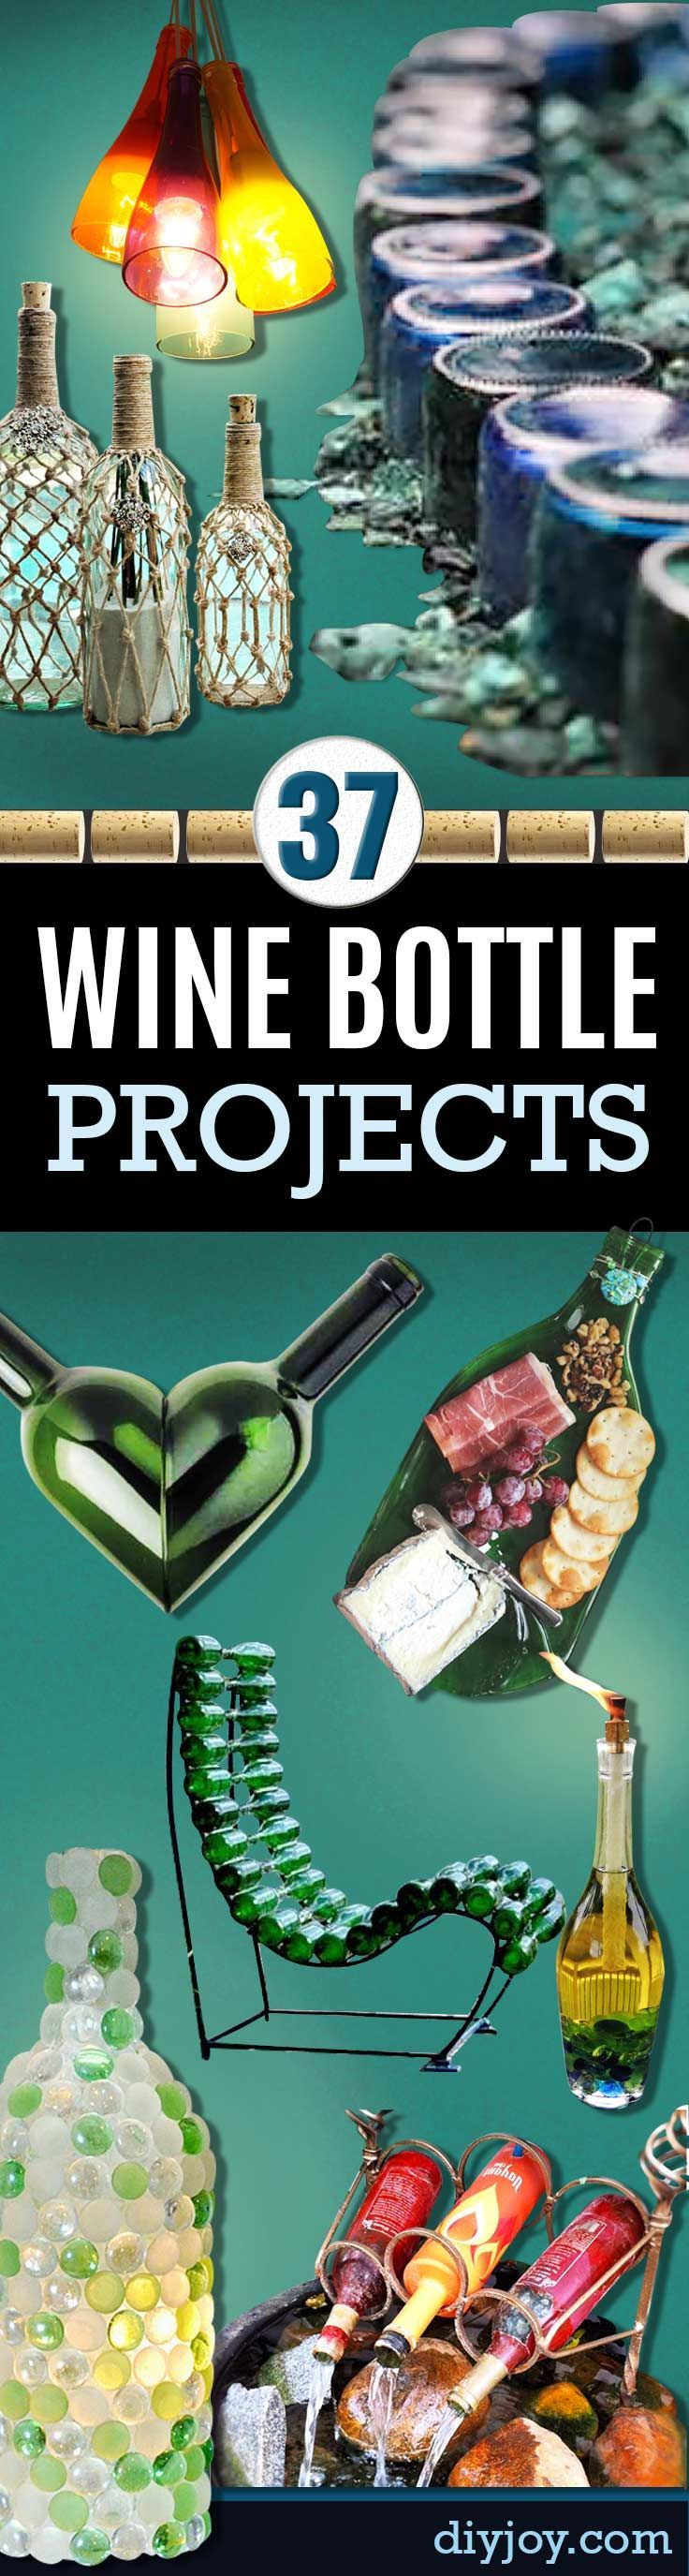 Wine Bottle DIY Crafts - Projects for Lights, Decoration, Gift Ideas, Wedding, Christmas. Easy Cut Glass Ideas for Home Decor on Pinterest http://diyjoy.com/wine-bottle-crafts